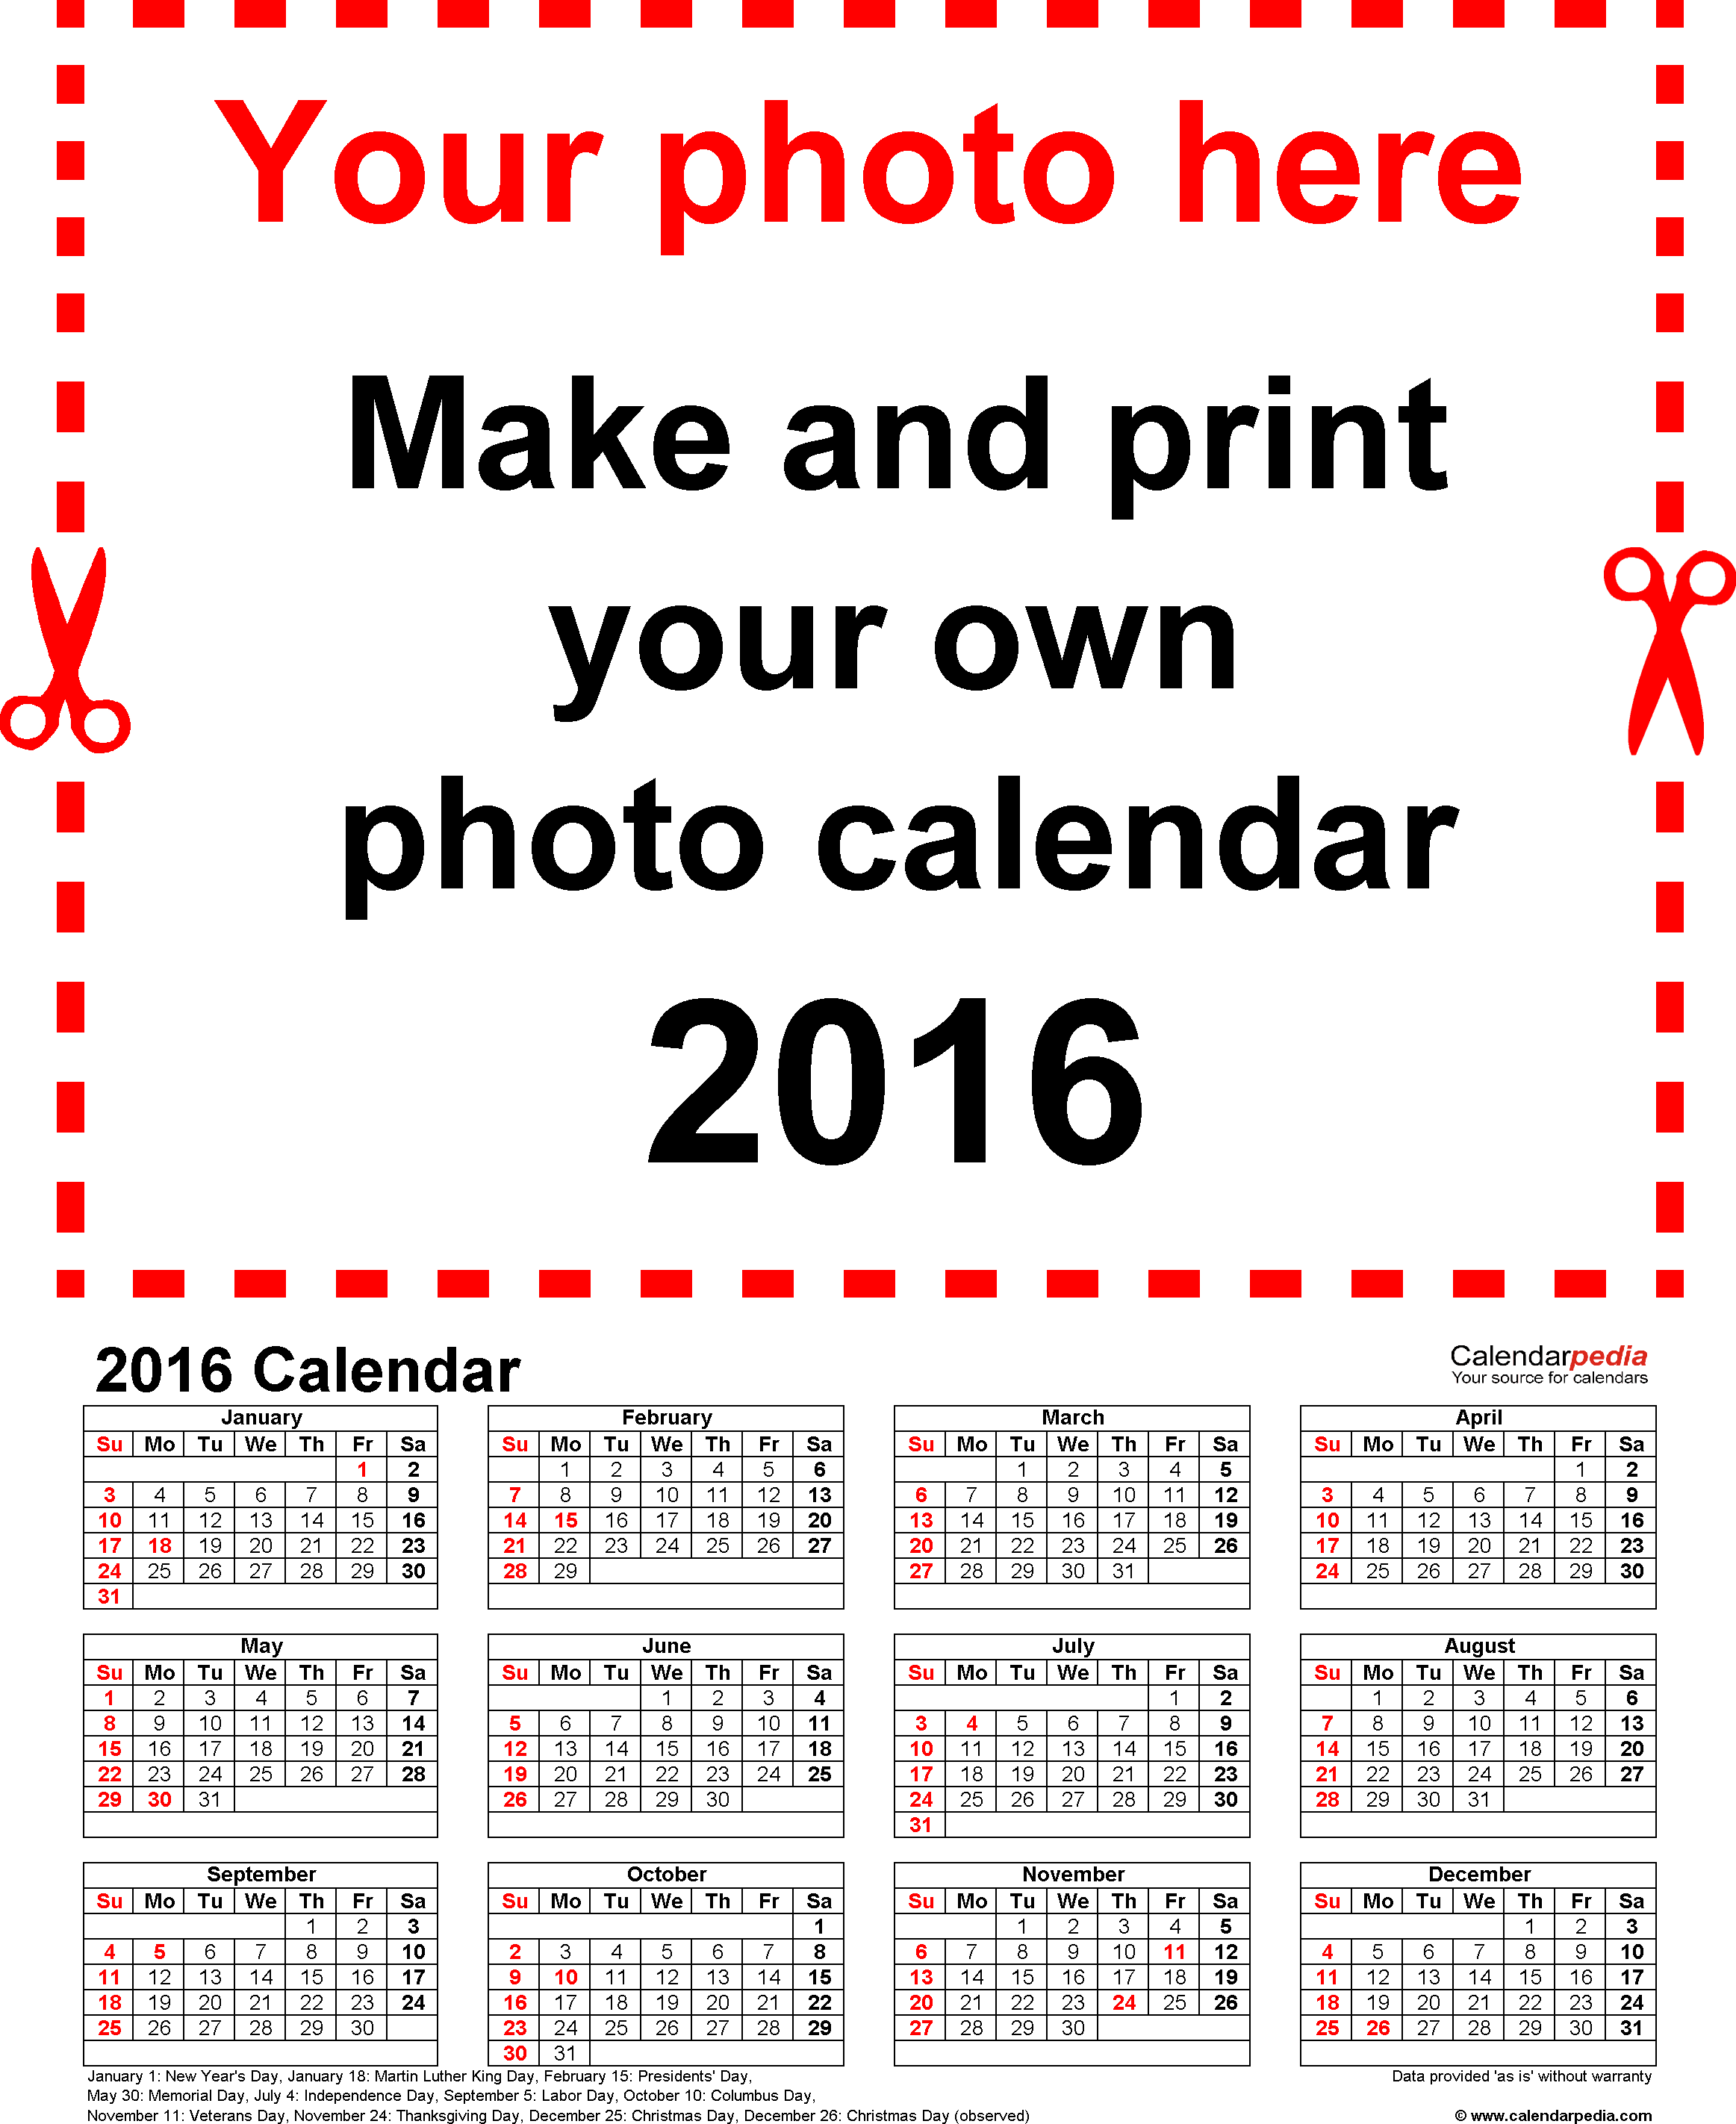 Download Template 4: Photo calendar 2016 for PDF, portrait format, whole year on one page